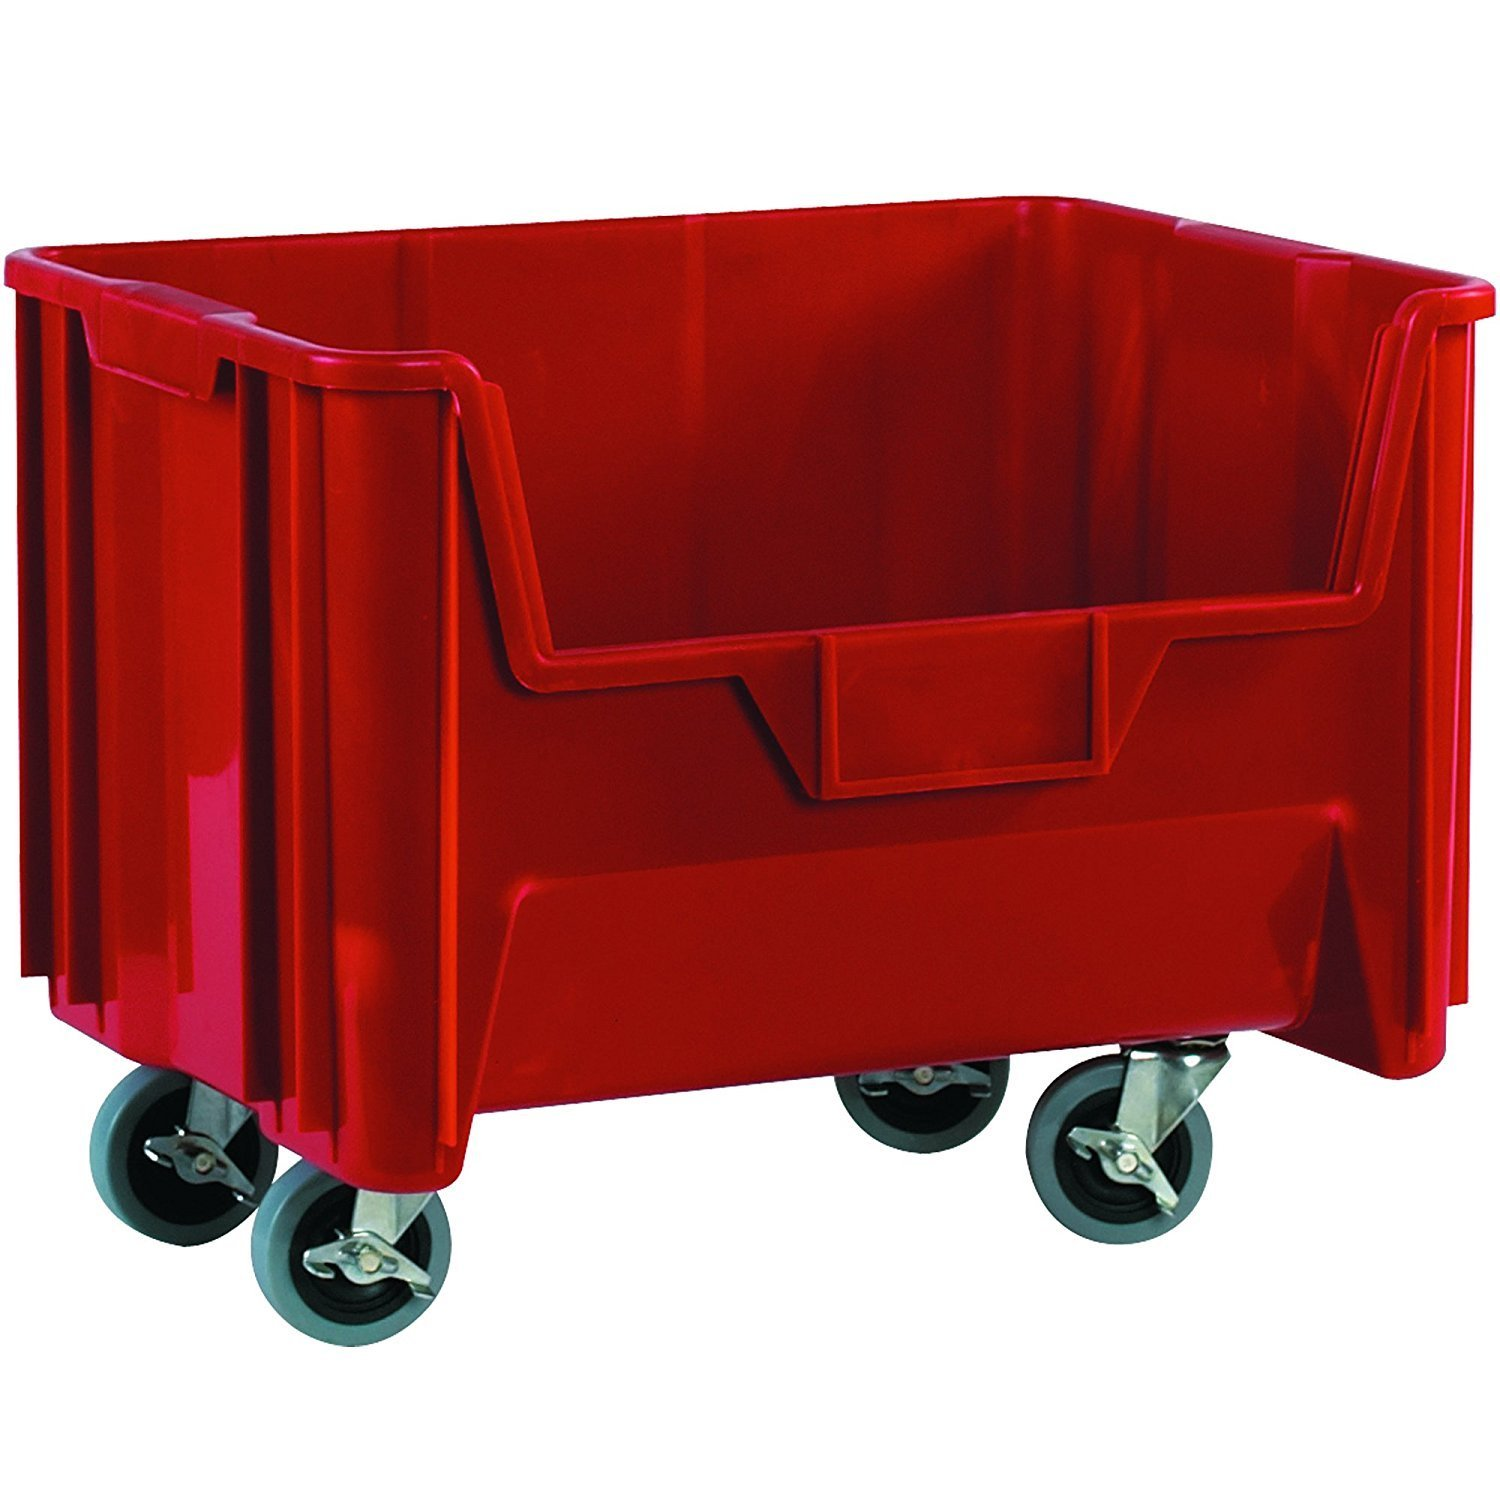 "RetailSource BING121 19 7/8"" x 15 1/4"" x 12 7/16"" Red Mobile Giant Stackable Bins, 19.875"" Length, 12.4375"" Height, 15.25"" Width (Pack of 3)"